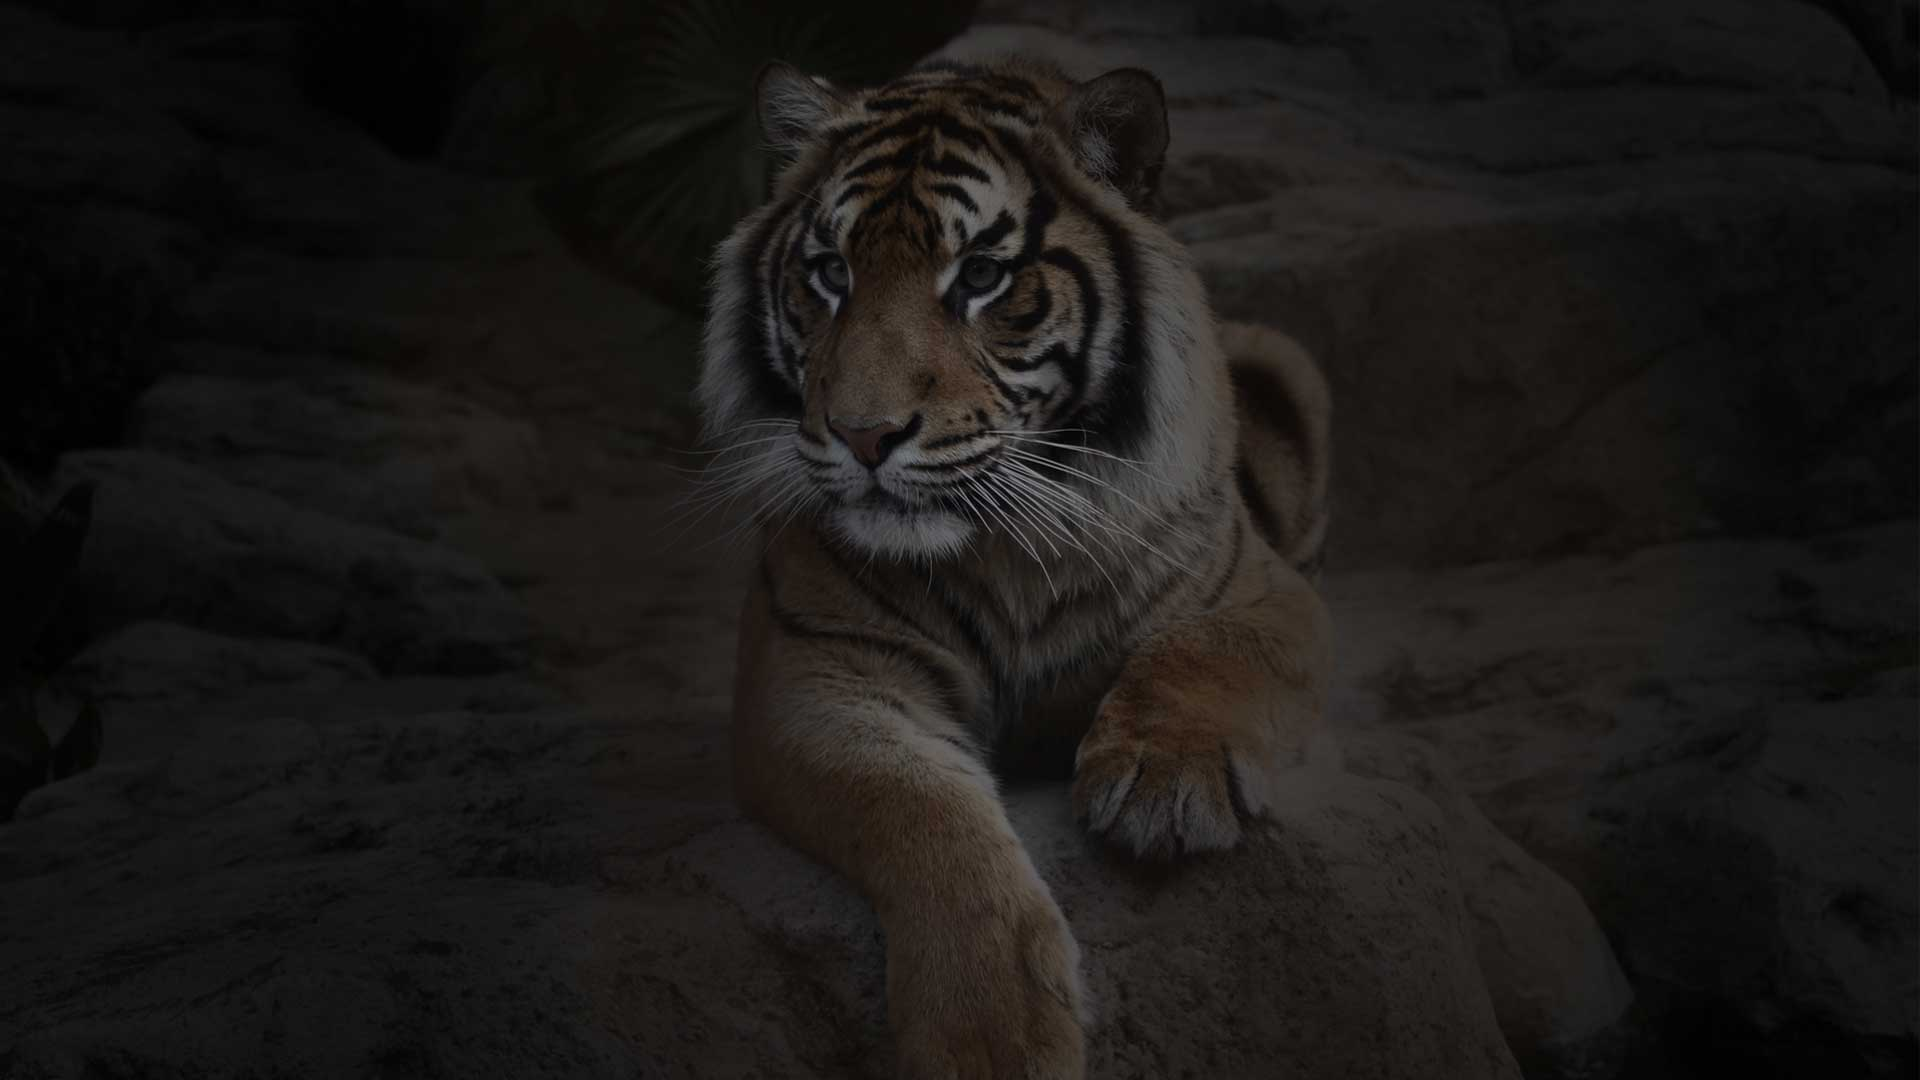 https://rfacdn.nz/zoo/assets/media/safari-night-tiger-night-gallery.jpg